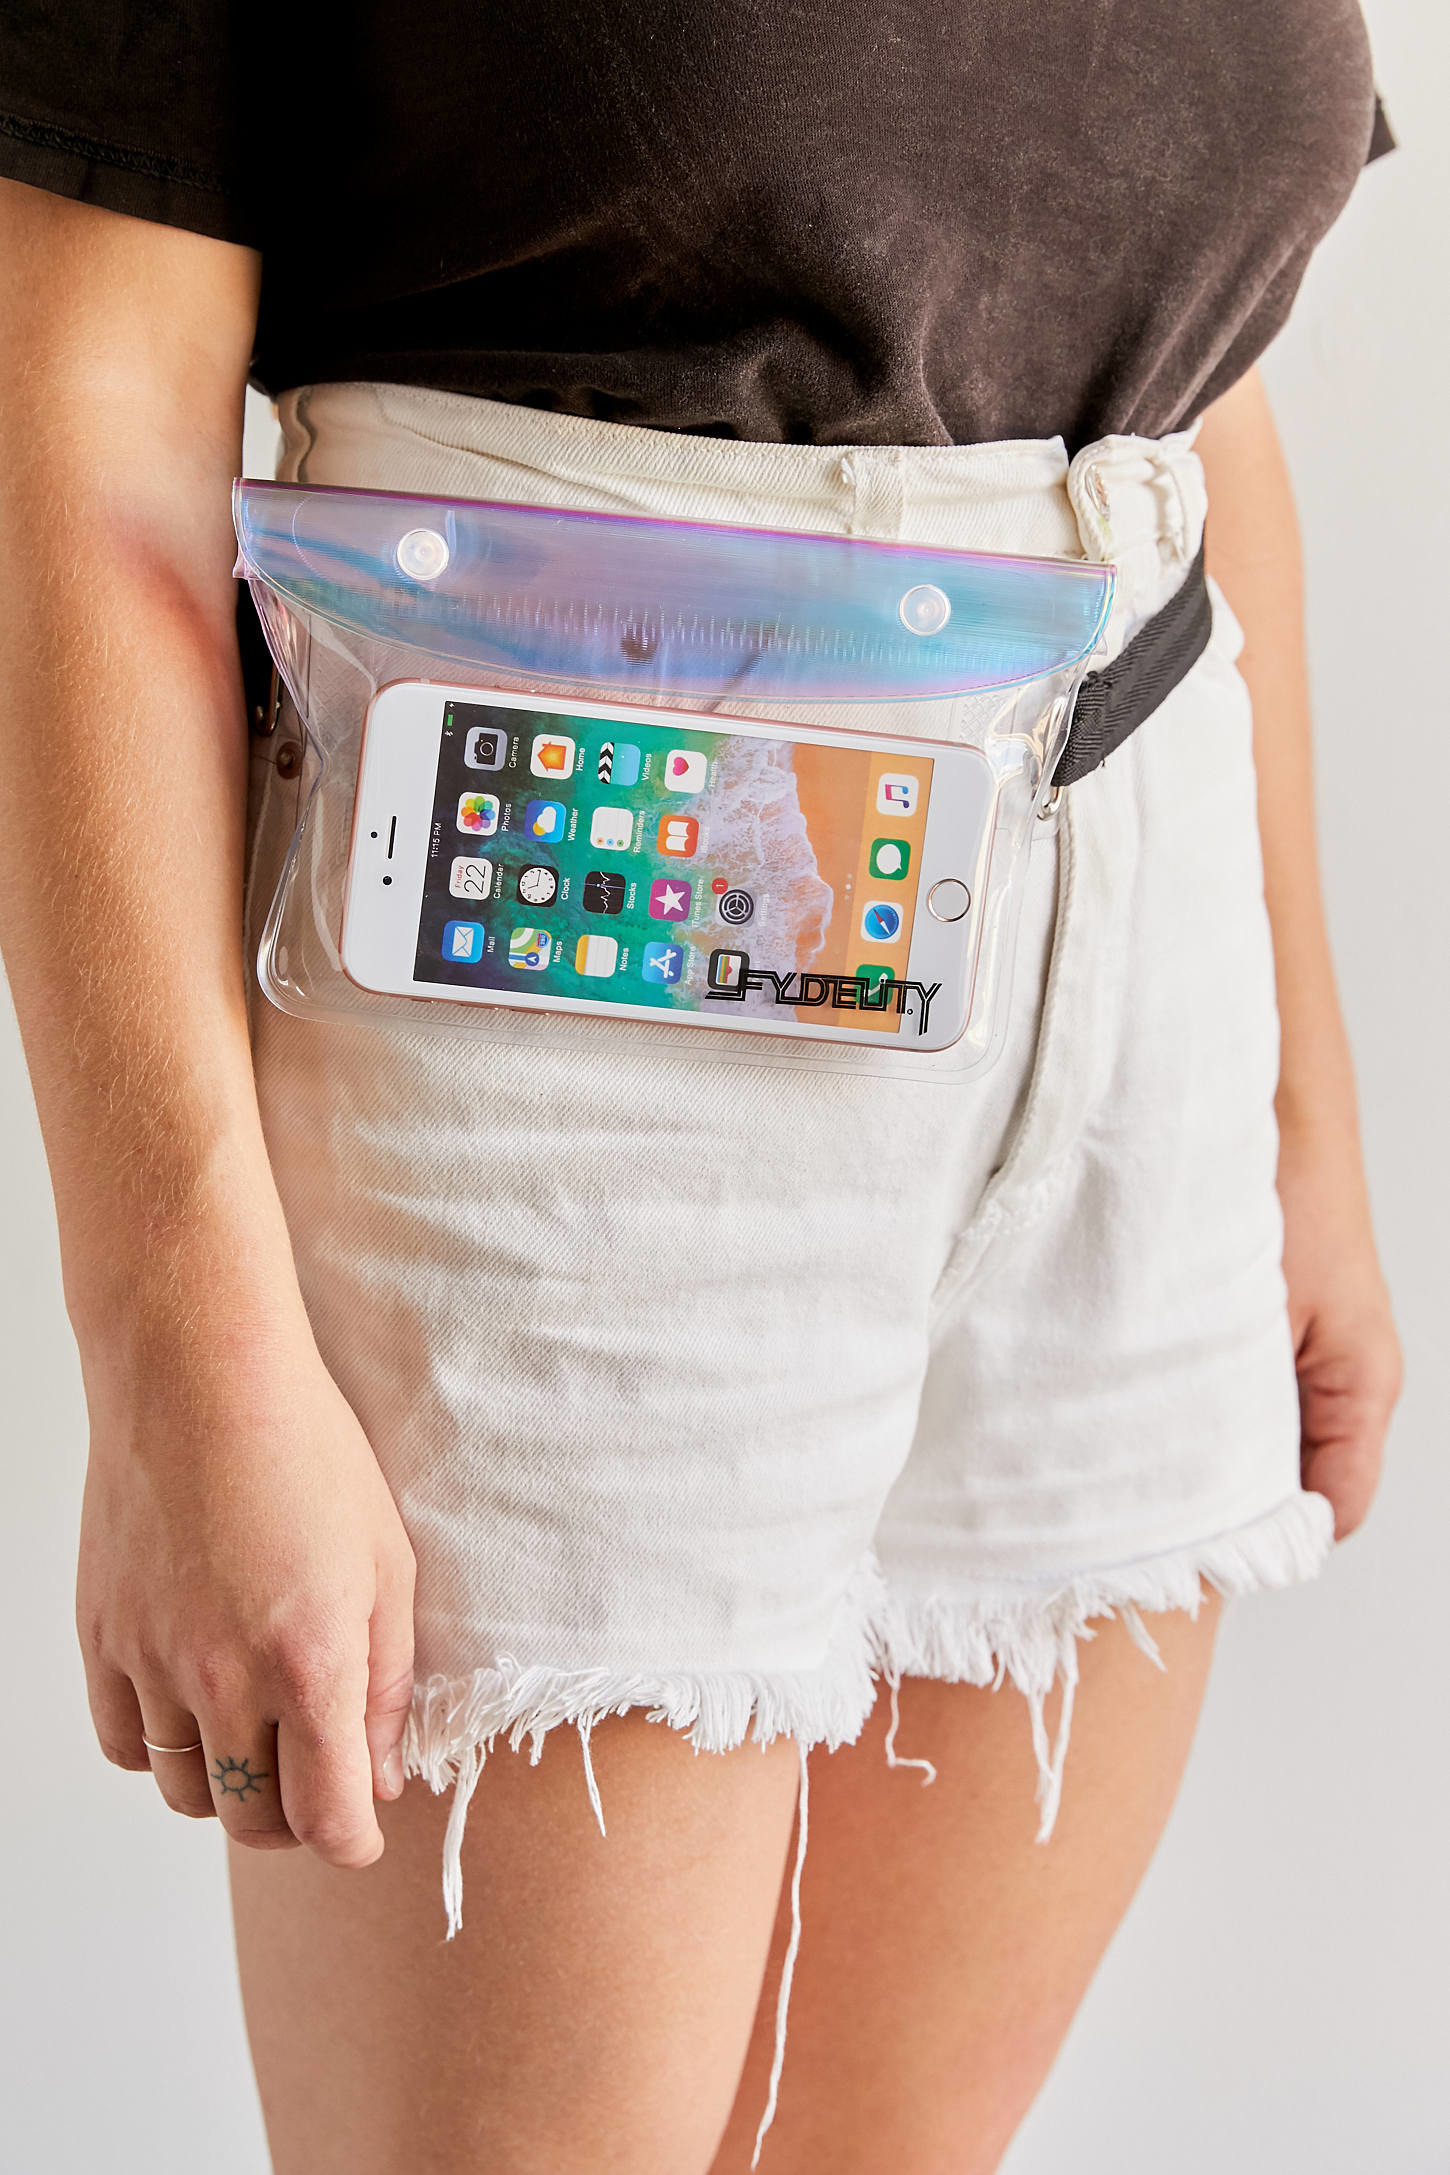 a person in shorts wearing the translucent fanny pack